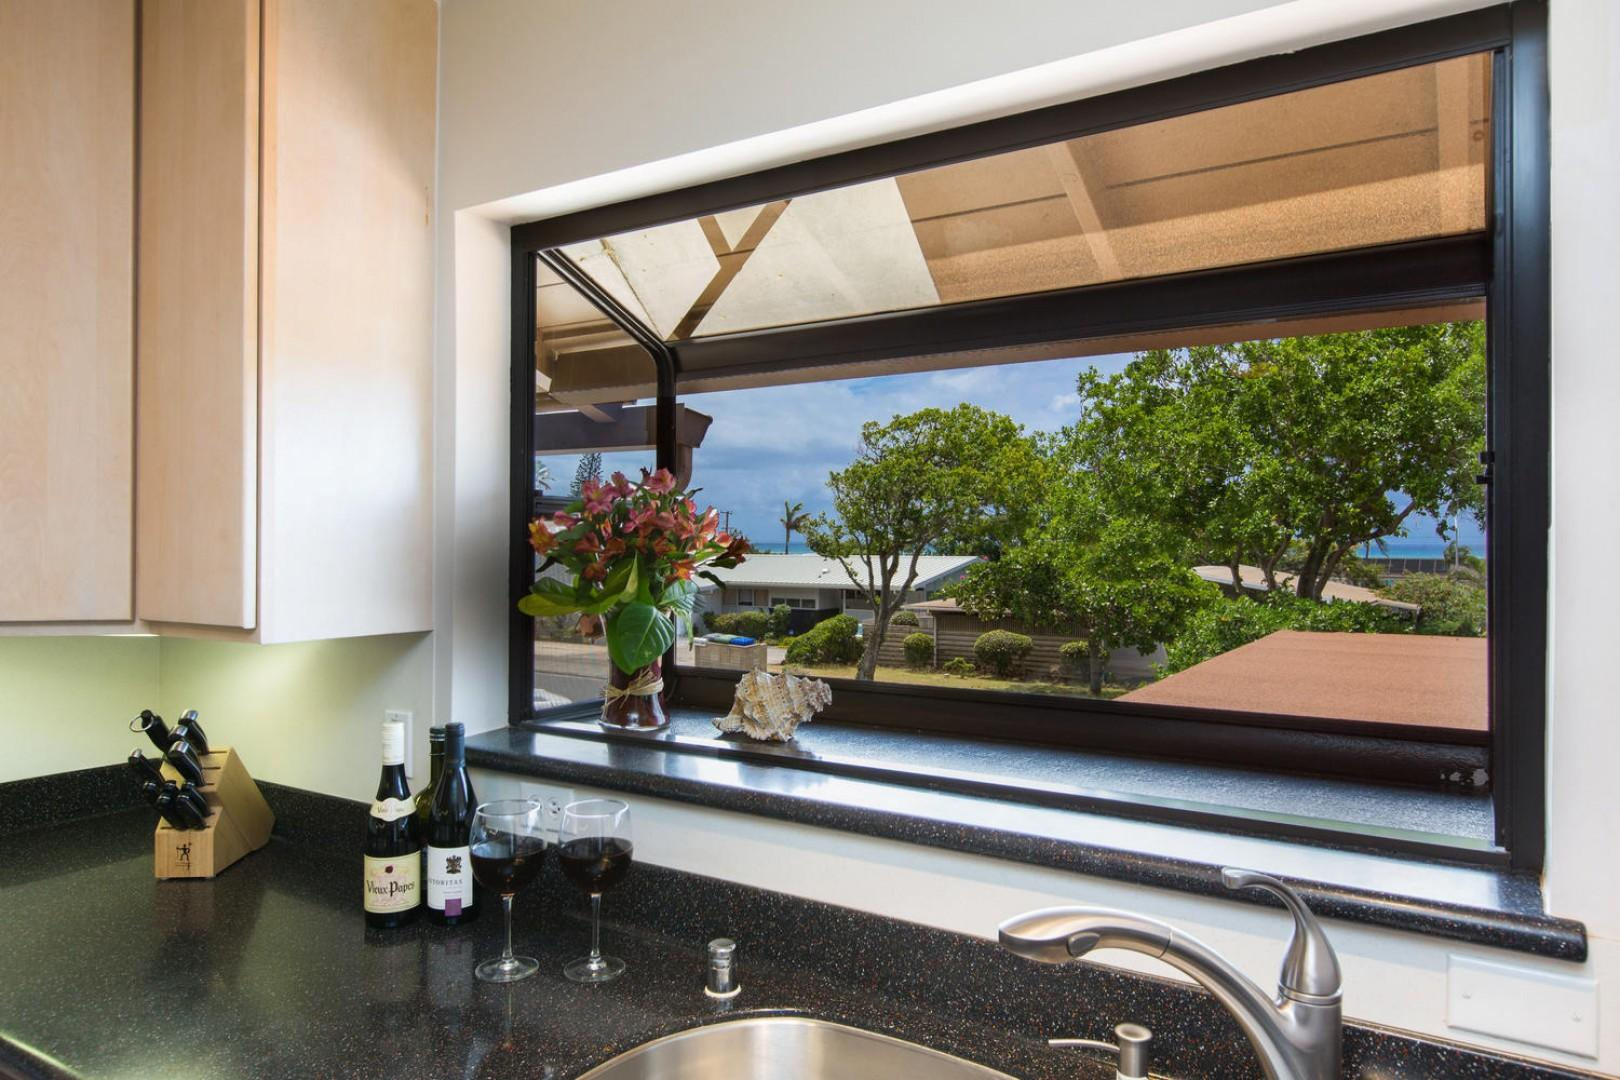 If you have to wash dishes while on vacation, at least you'll have an ocean view!